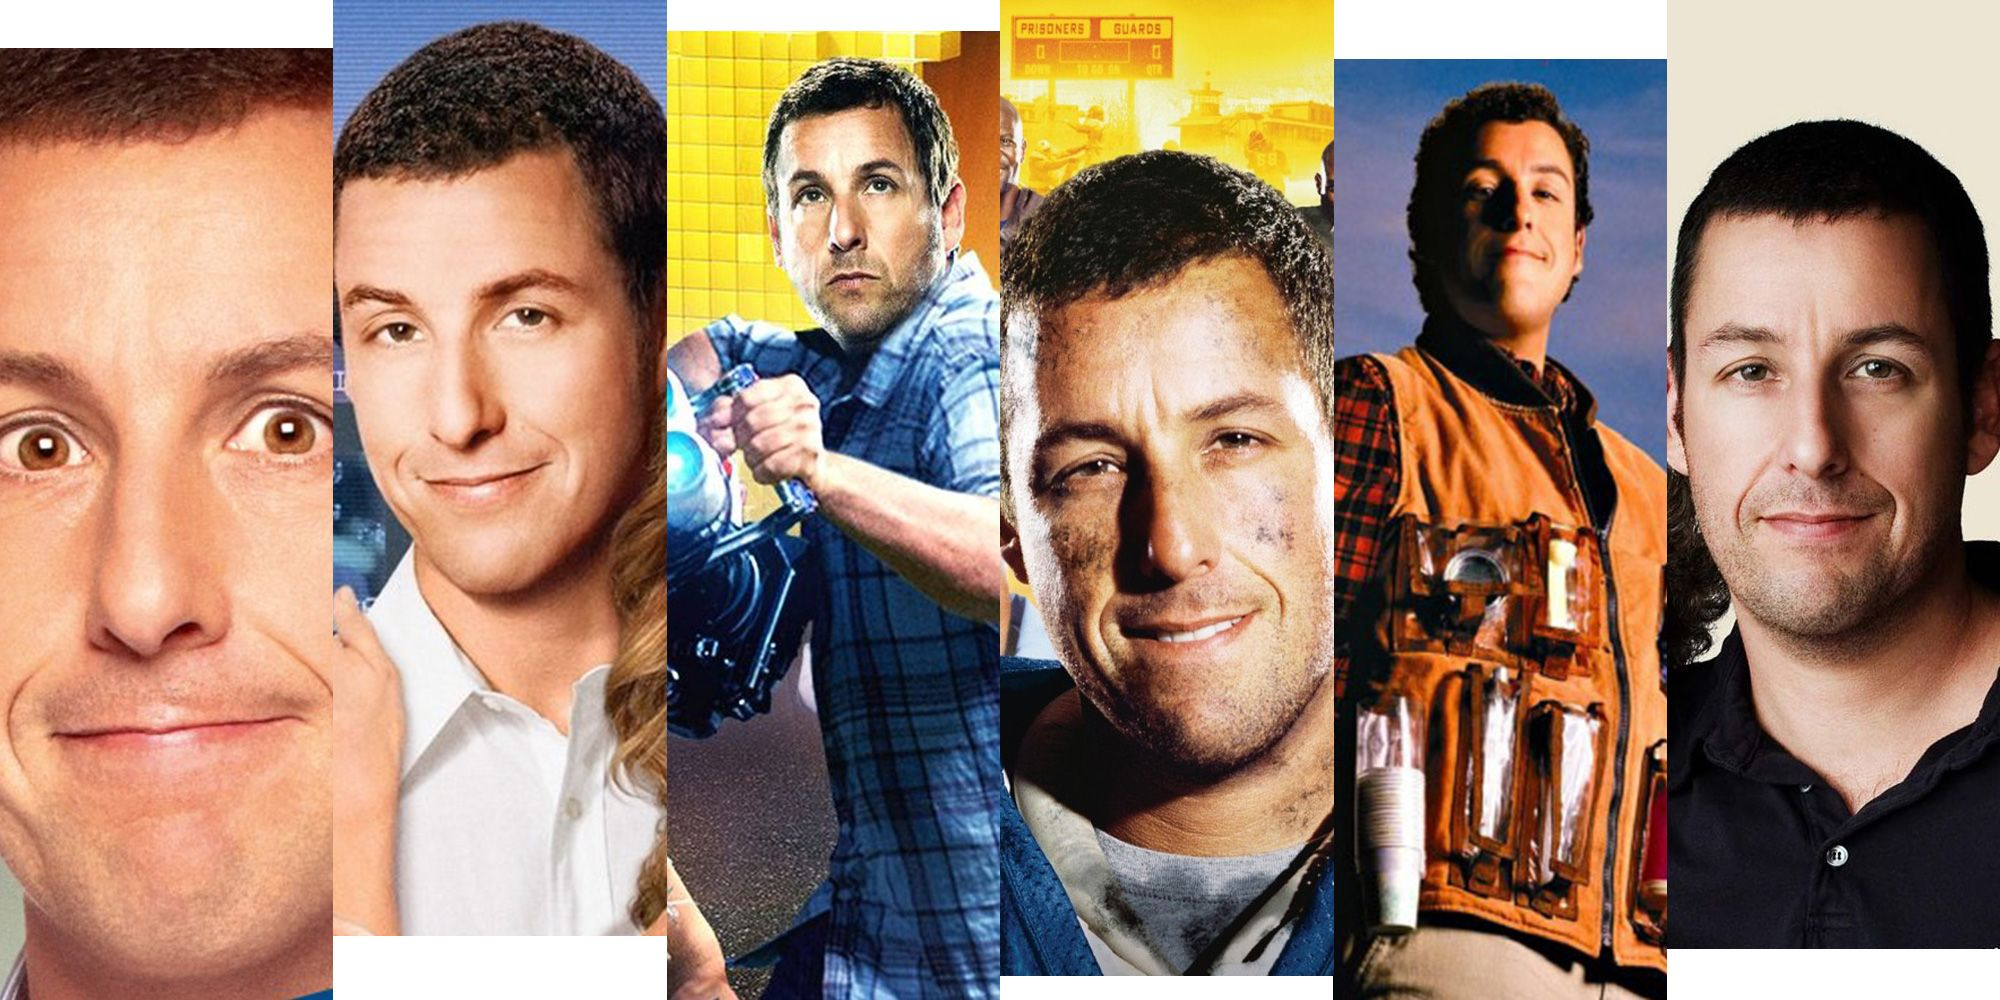 Sandler and young show me a man